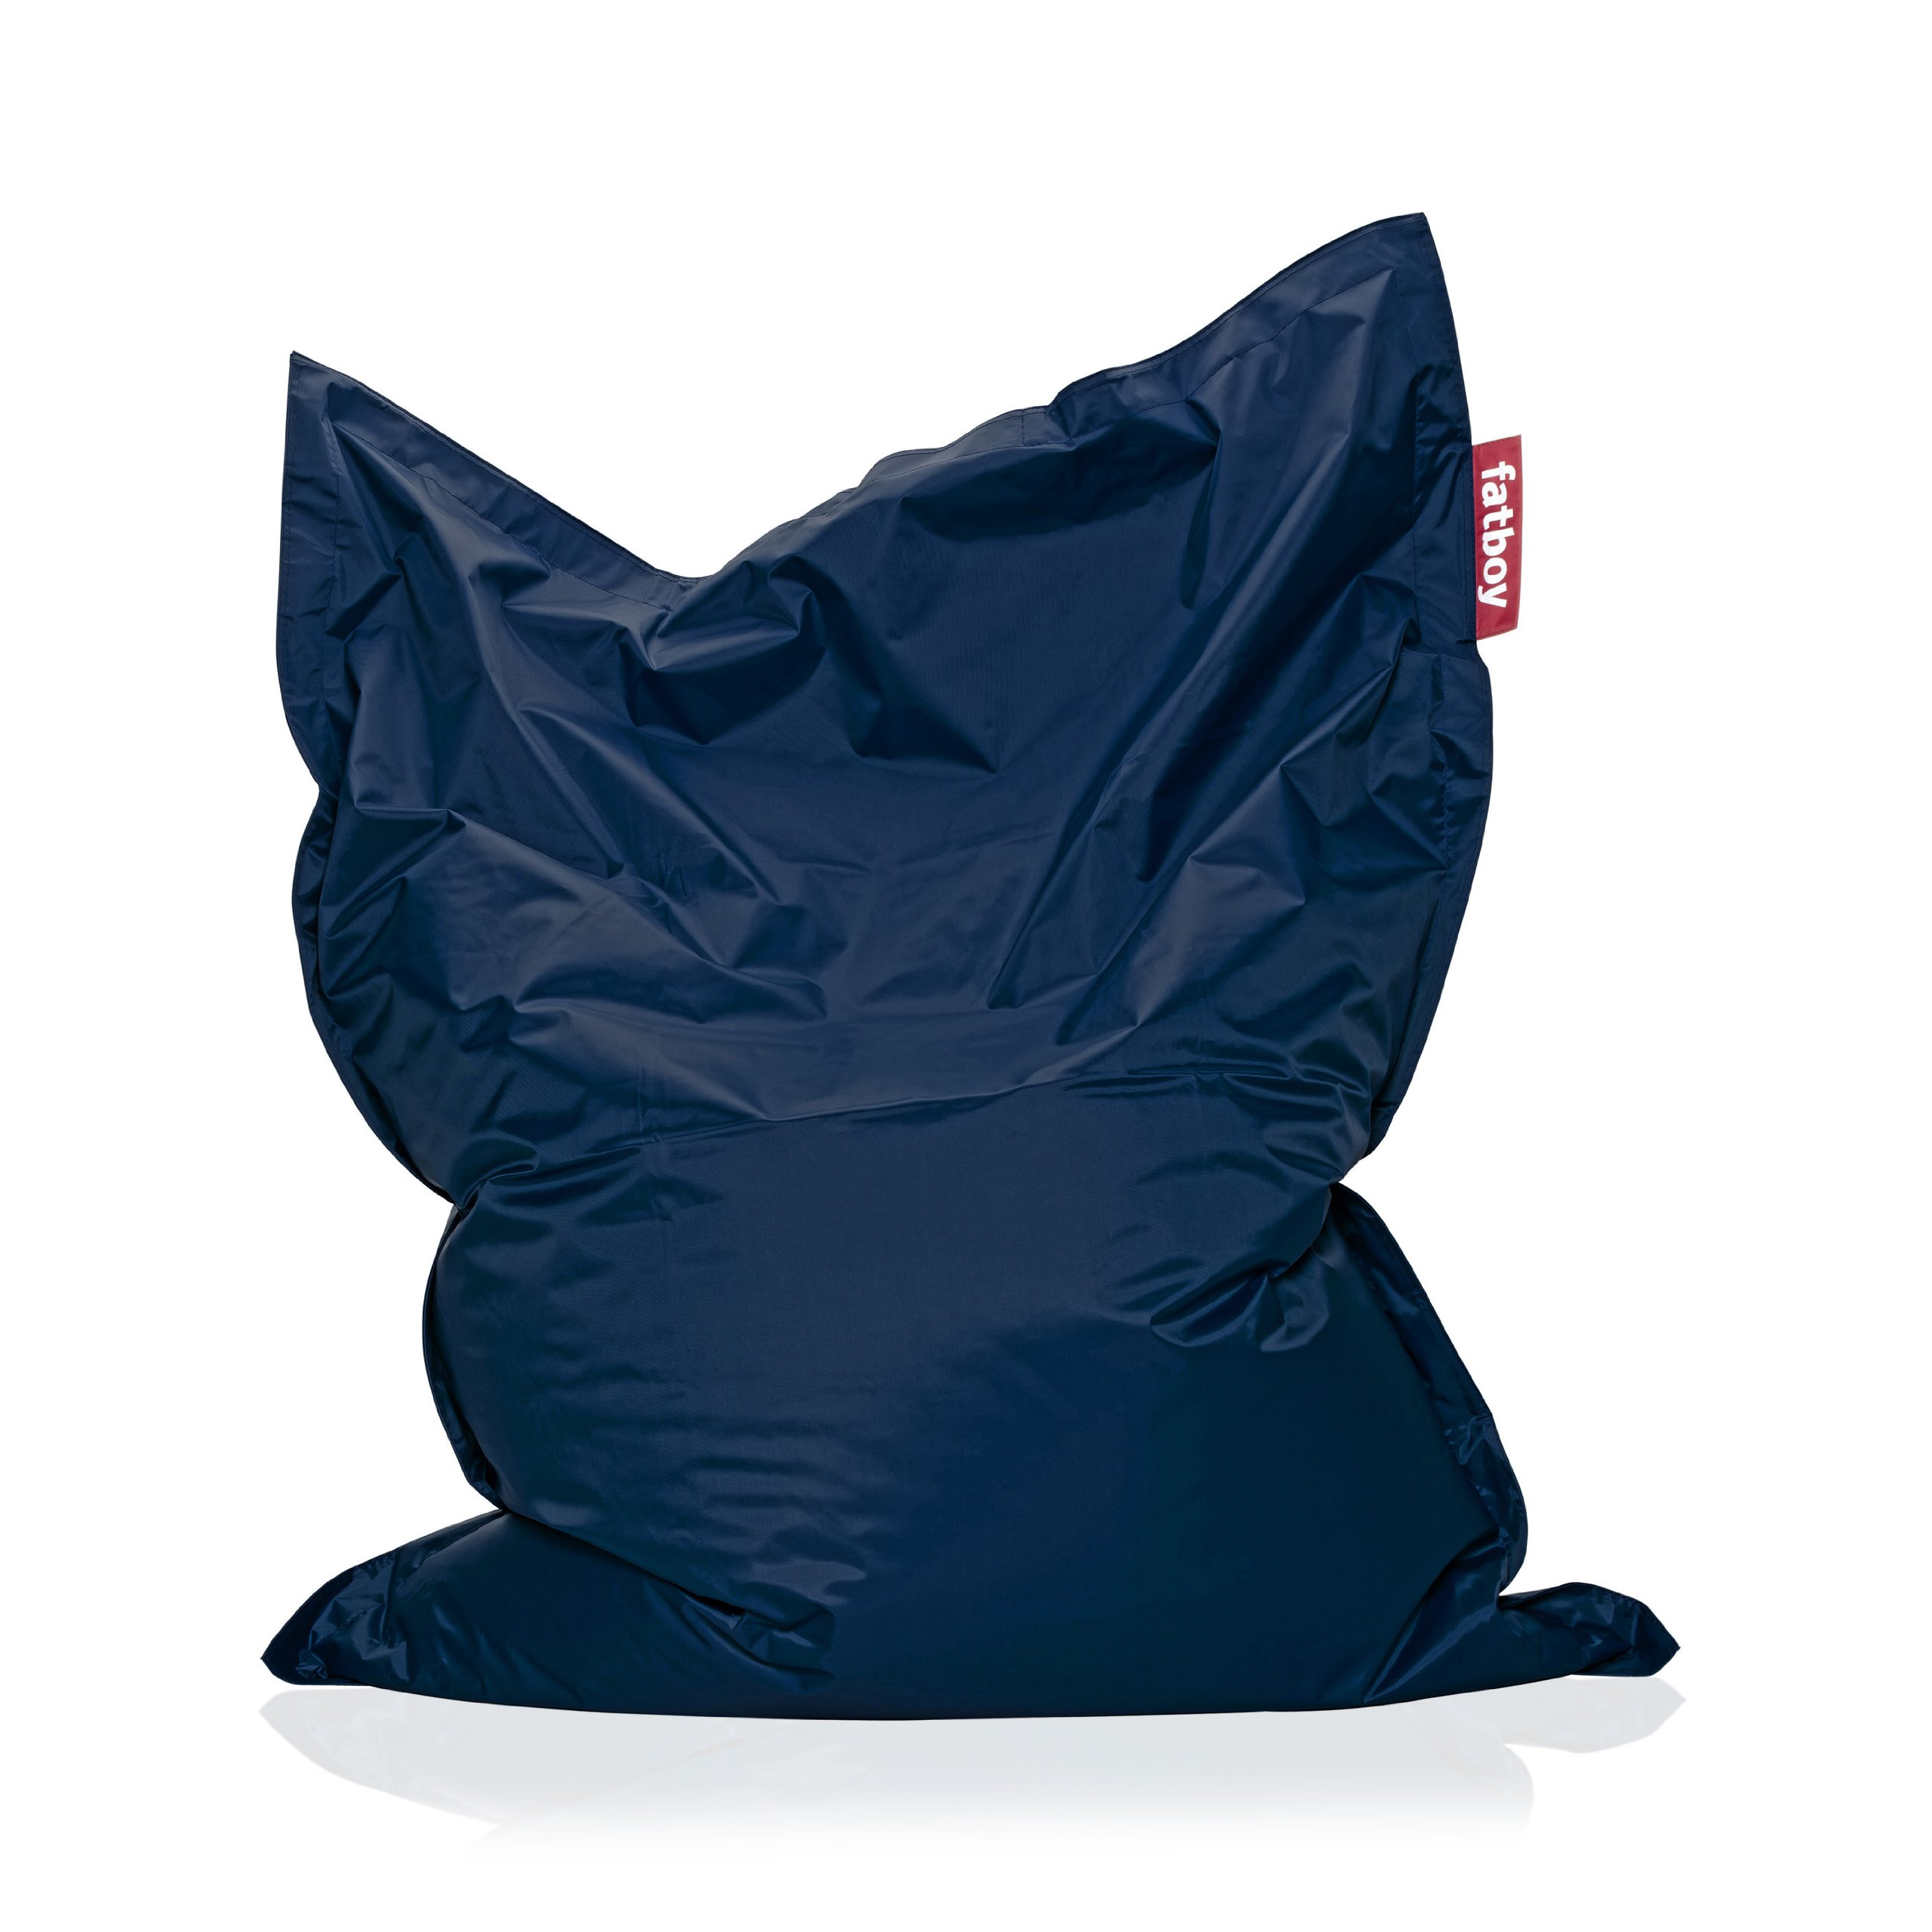 Fatboy The Original Bean Bag Chair - Blue